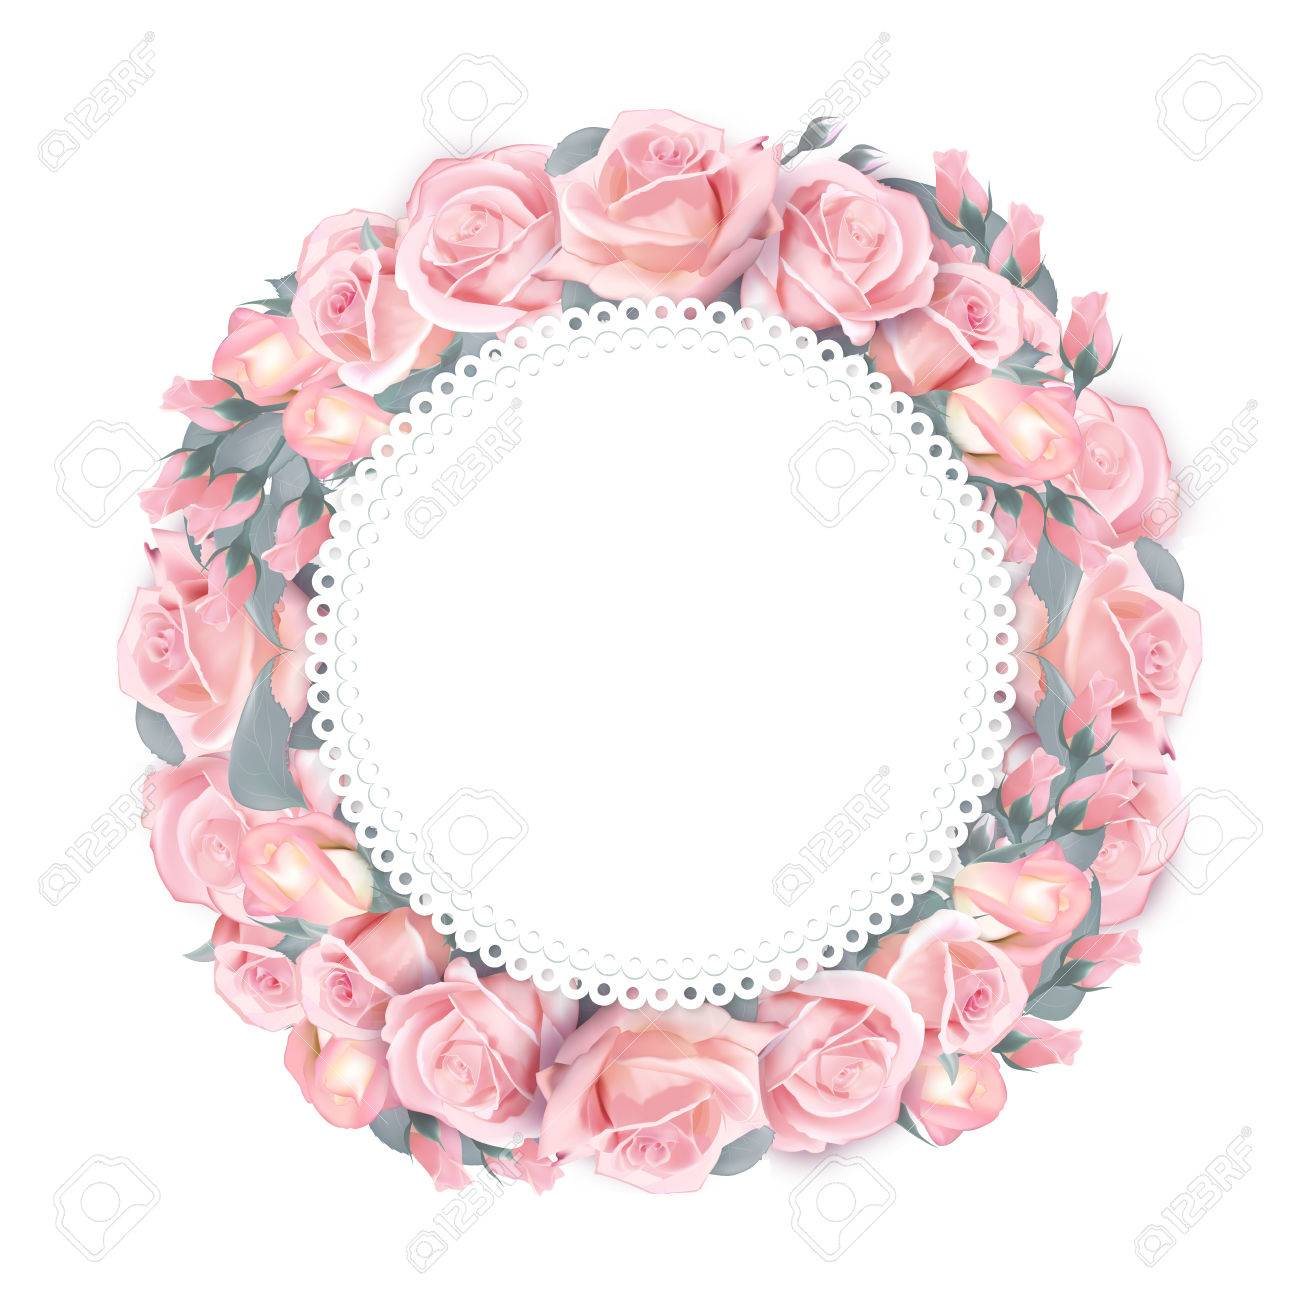 Vector Round Frame Wreath Pattern With Roses Pink Flower Buds